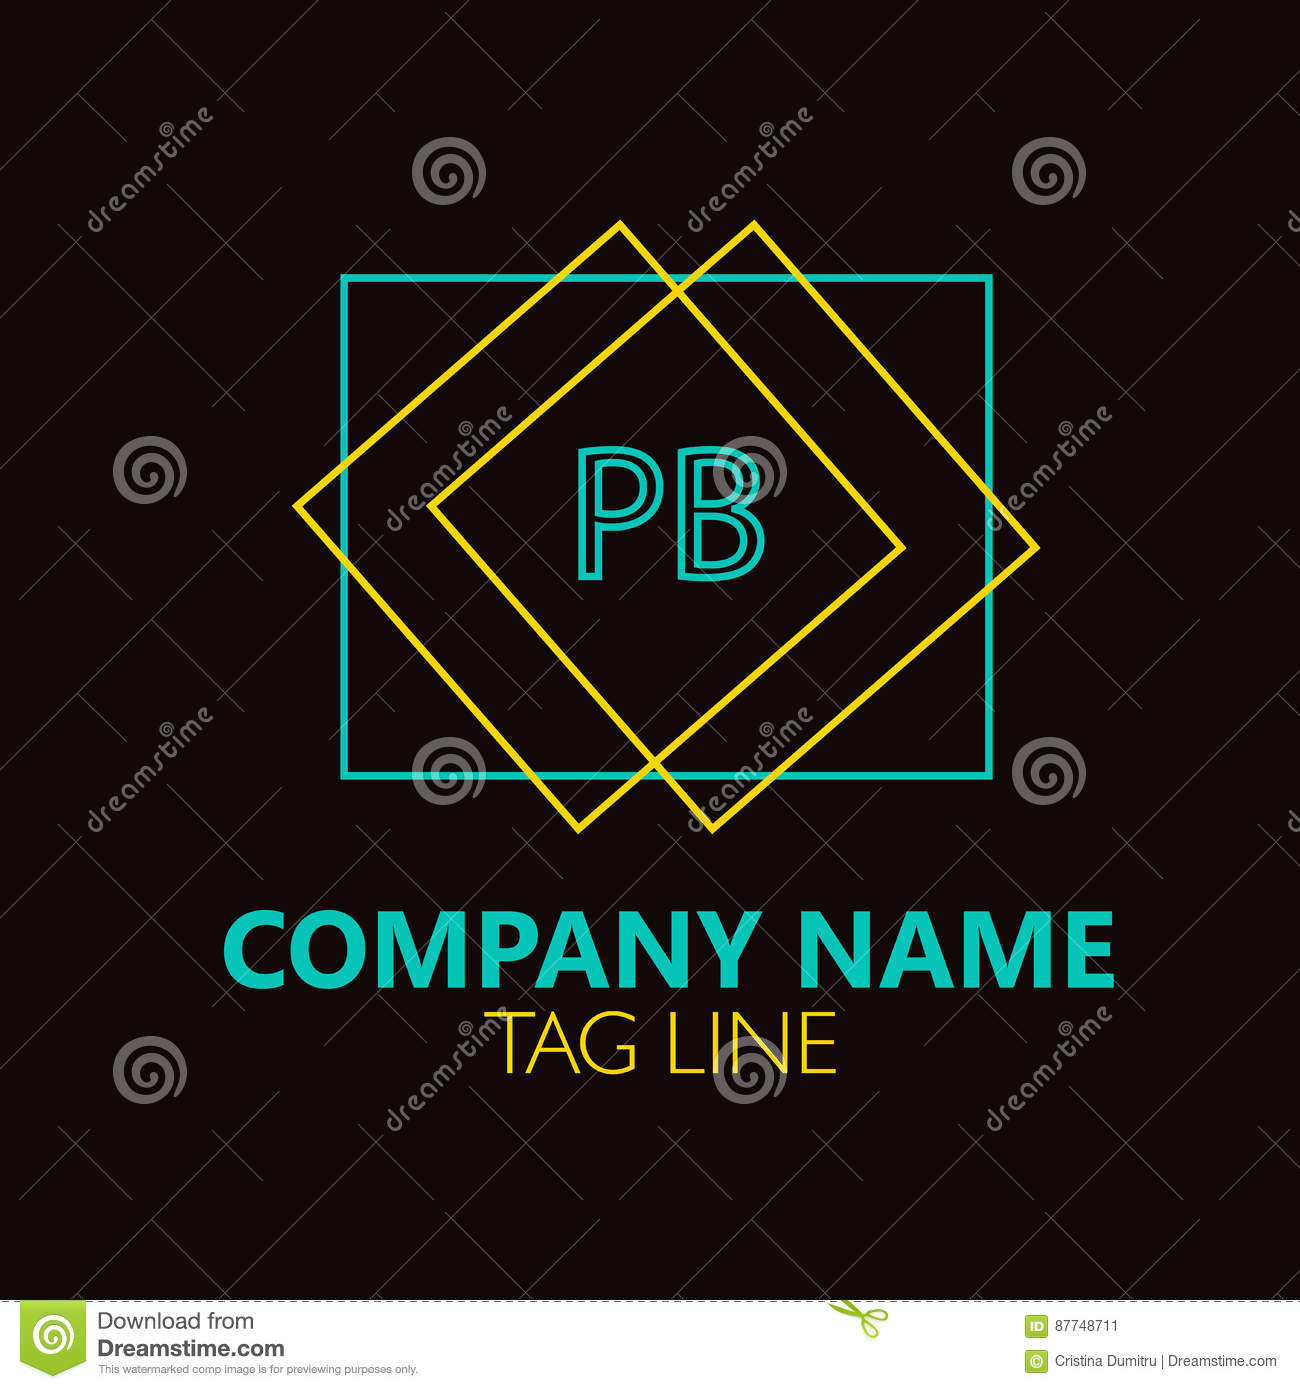 Pb Letter Logo Design Stock Vector Illustration Of Concept 87748711